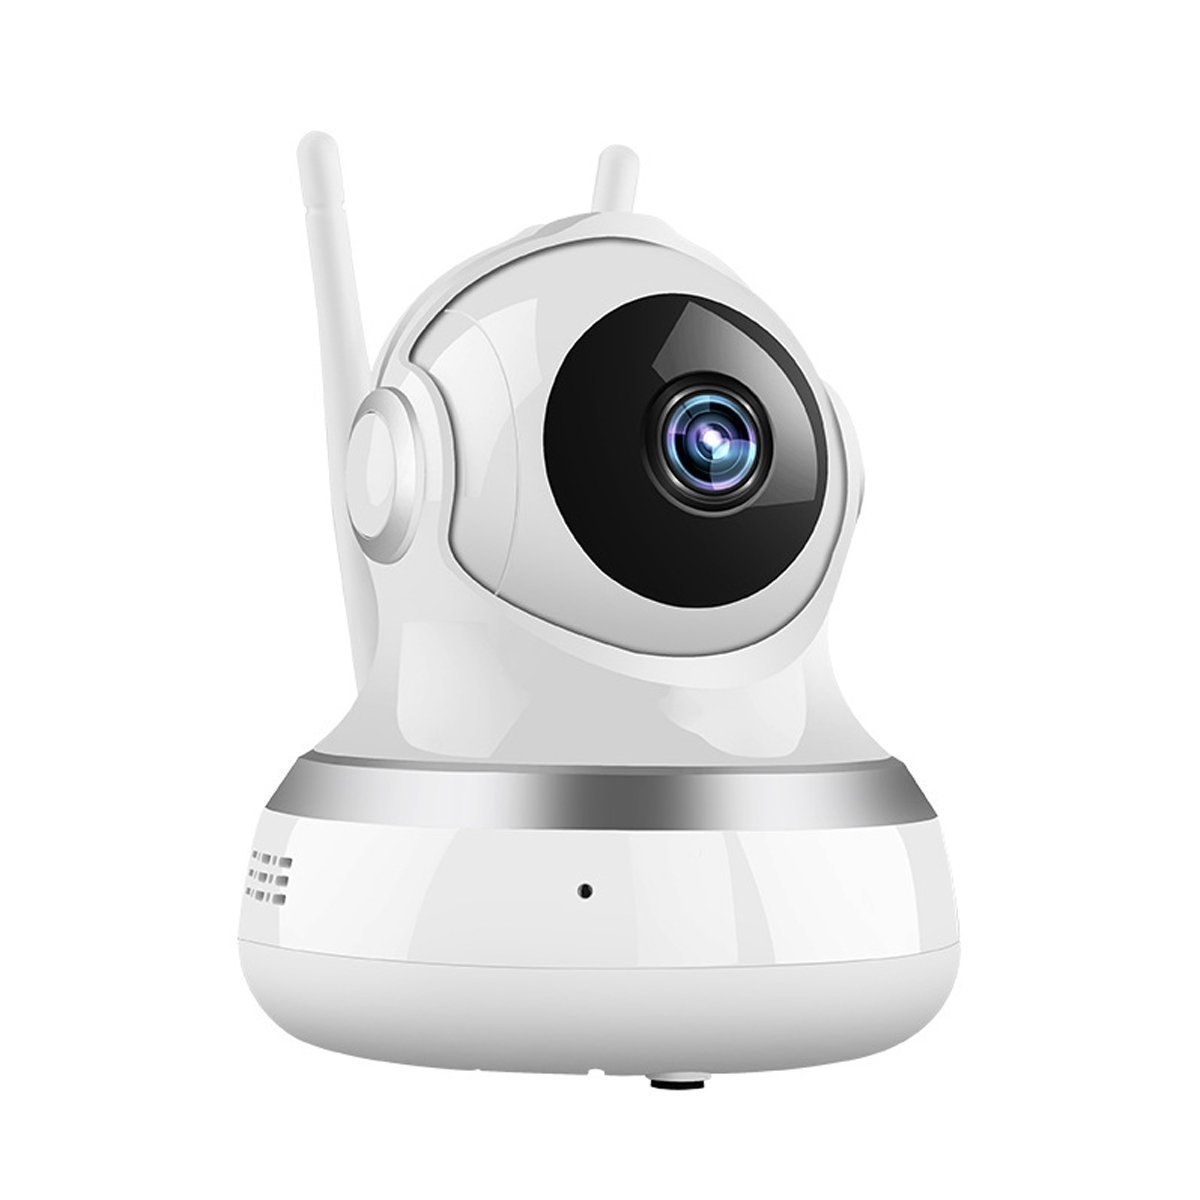 WiFi Camera - Wireless IP Camera with Two-Way Audio, Night Vision Camera, 2.4GHz & 720P Camera for Pet Baby Monitor, Home Security Camera Motion Detection Indoor Camera (White) by BOOCOSA